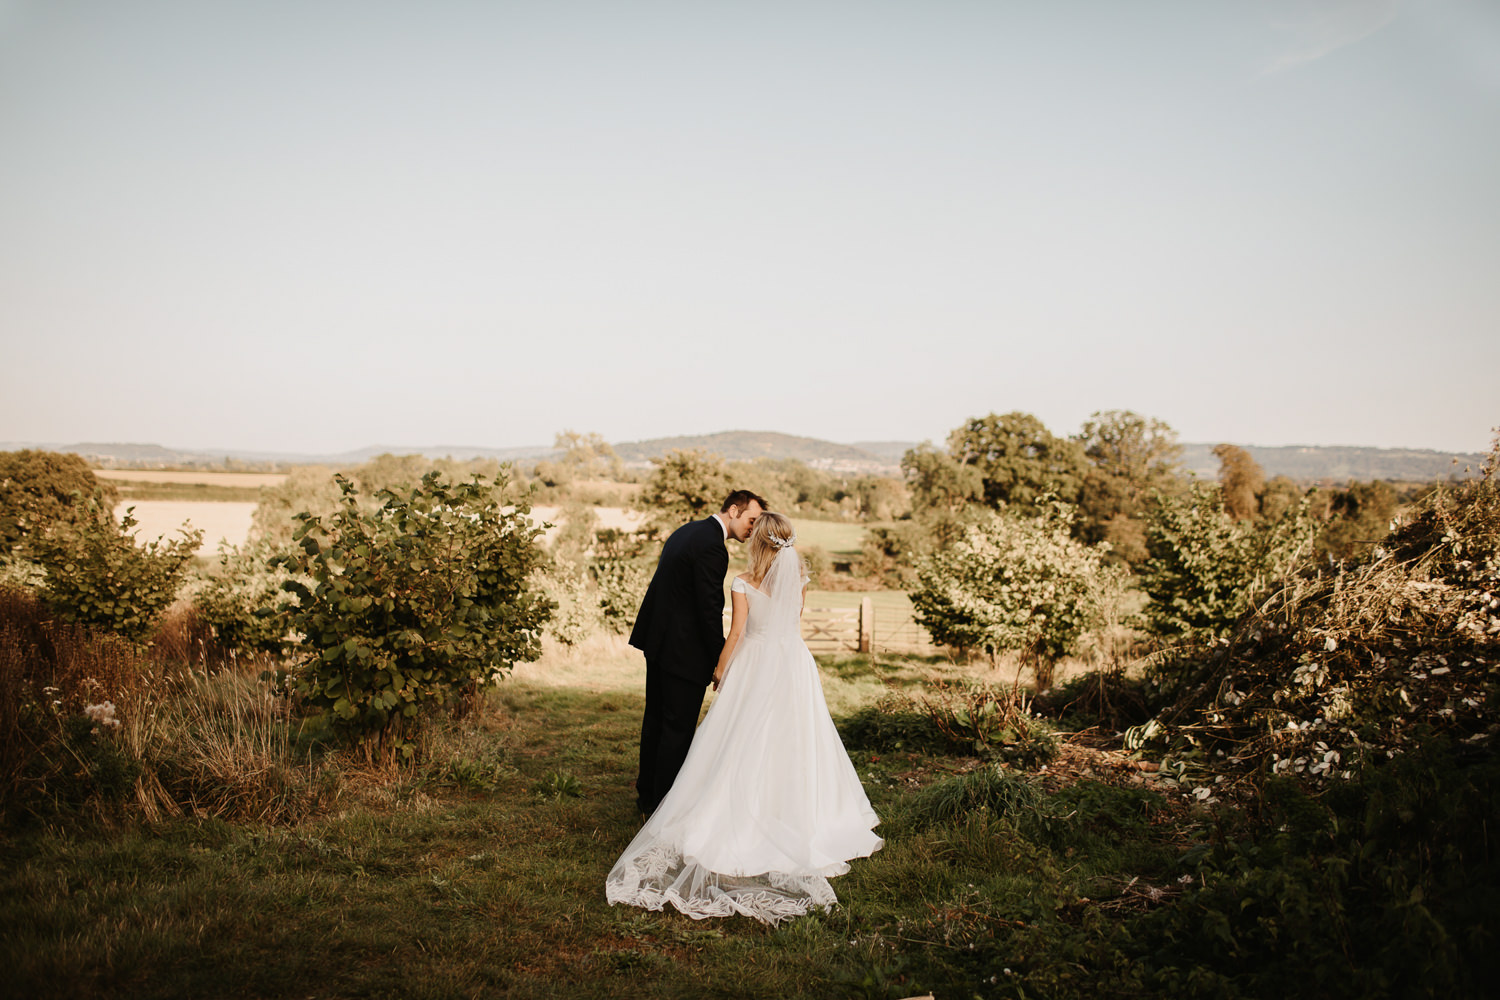 Elmore-court-Cotswolds-wedding-photographer